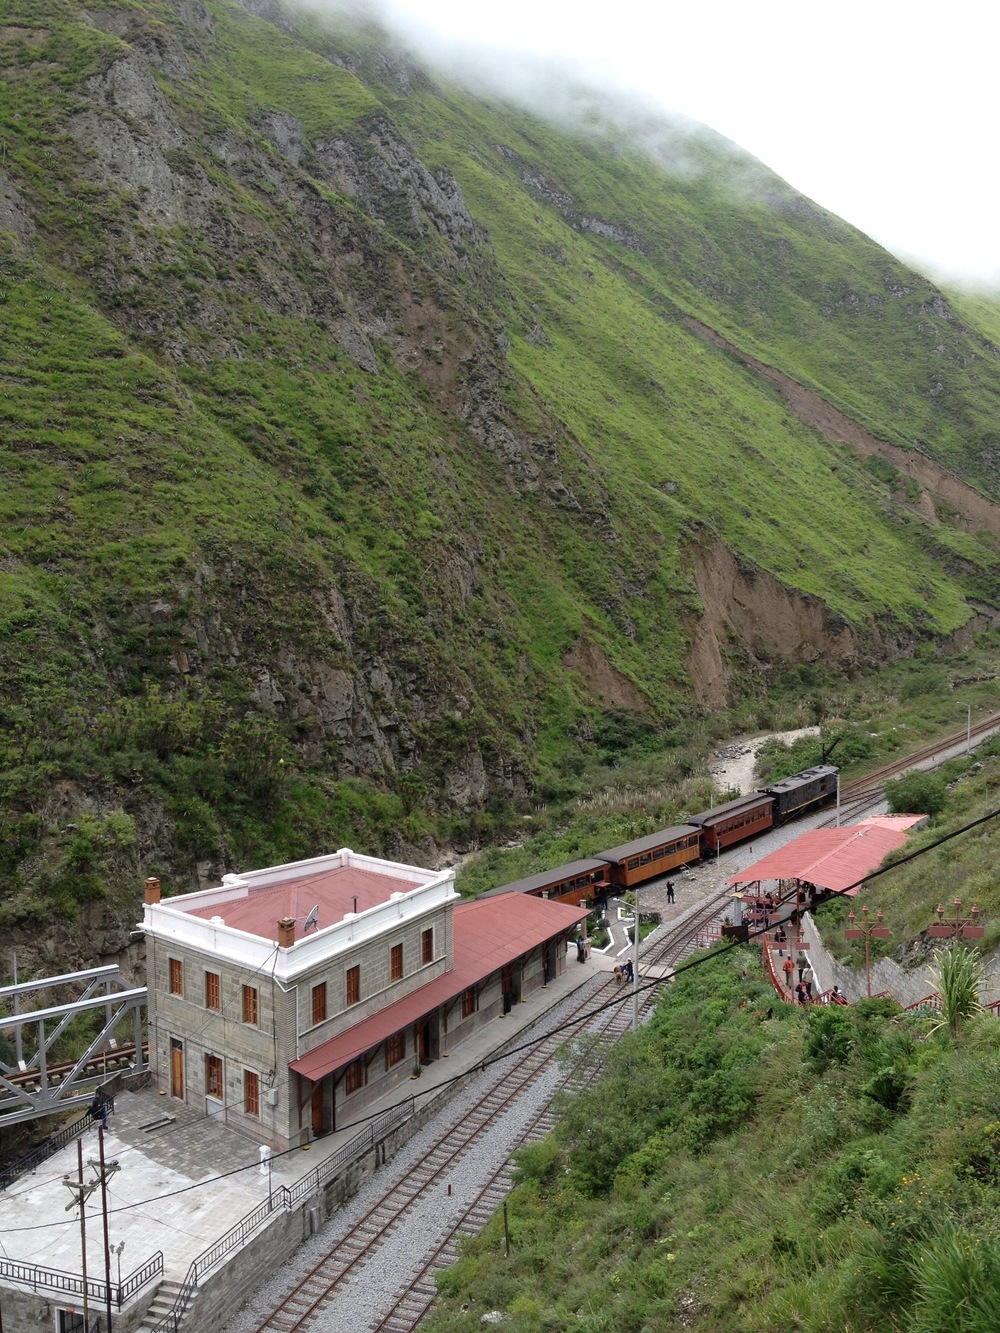 The Devil's Nose Train ride through the Andes